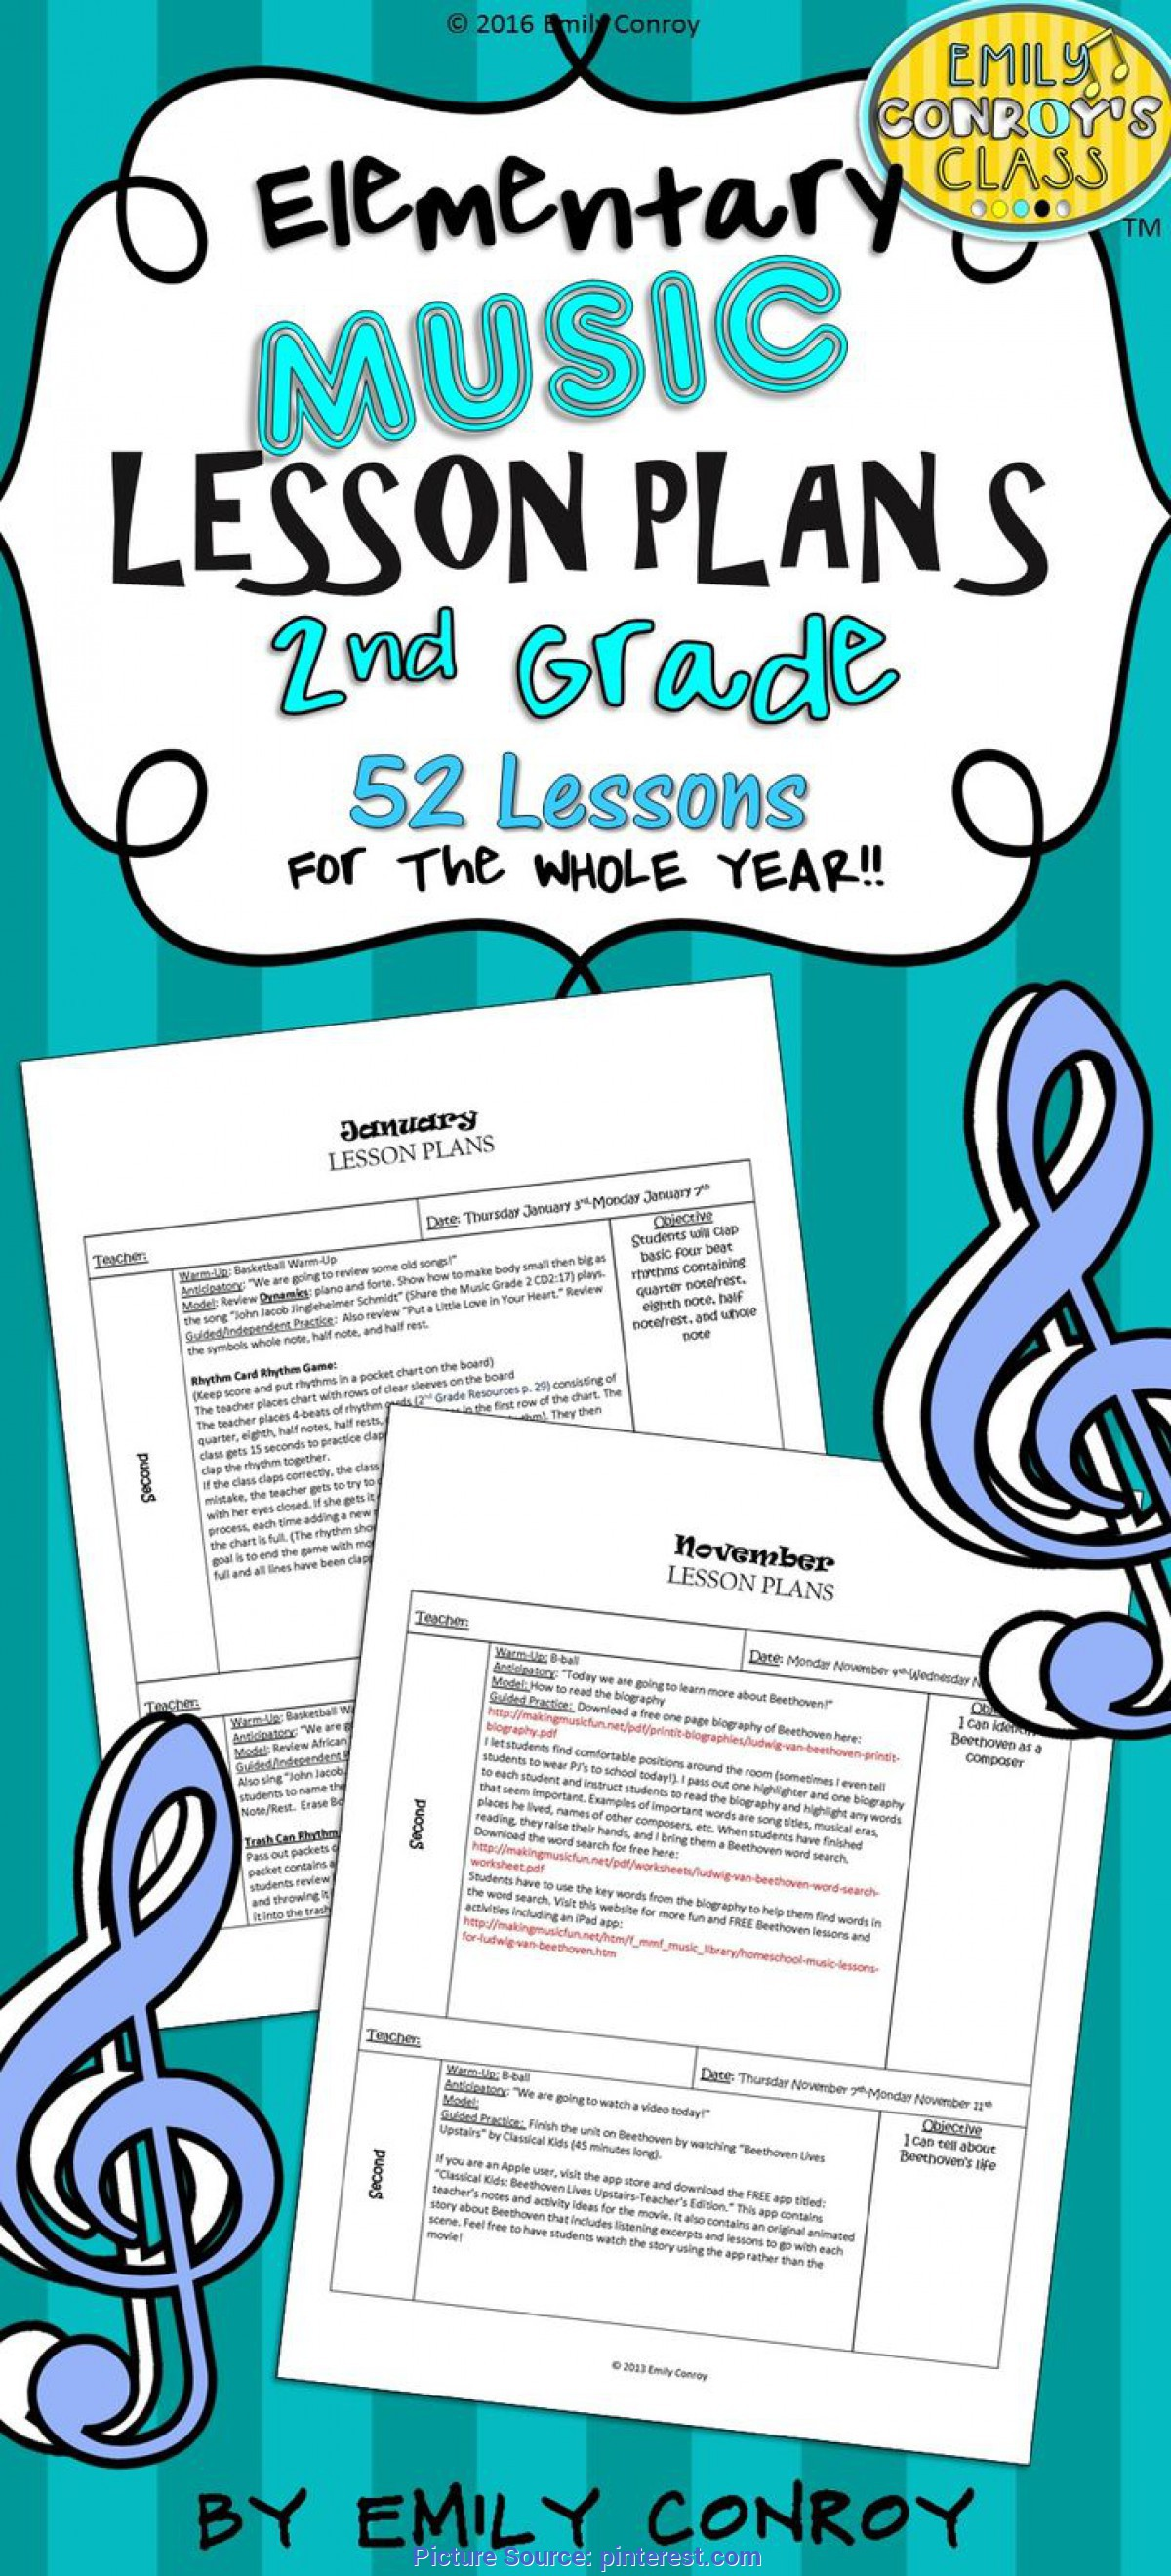 Kinder Garden: Typical How To Make A Lesson Plan For Music Best 25